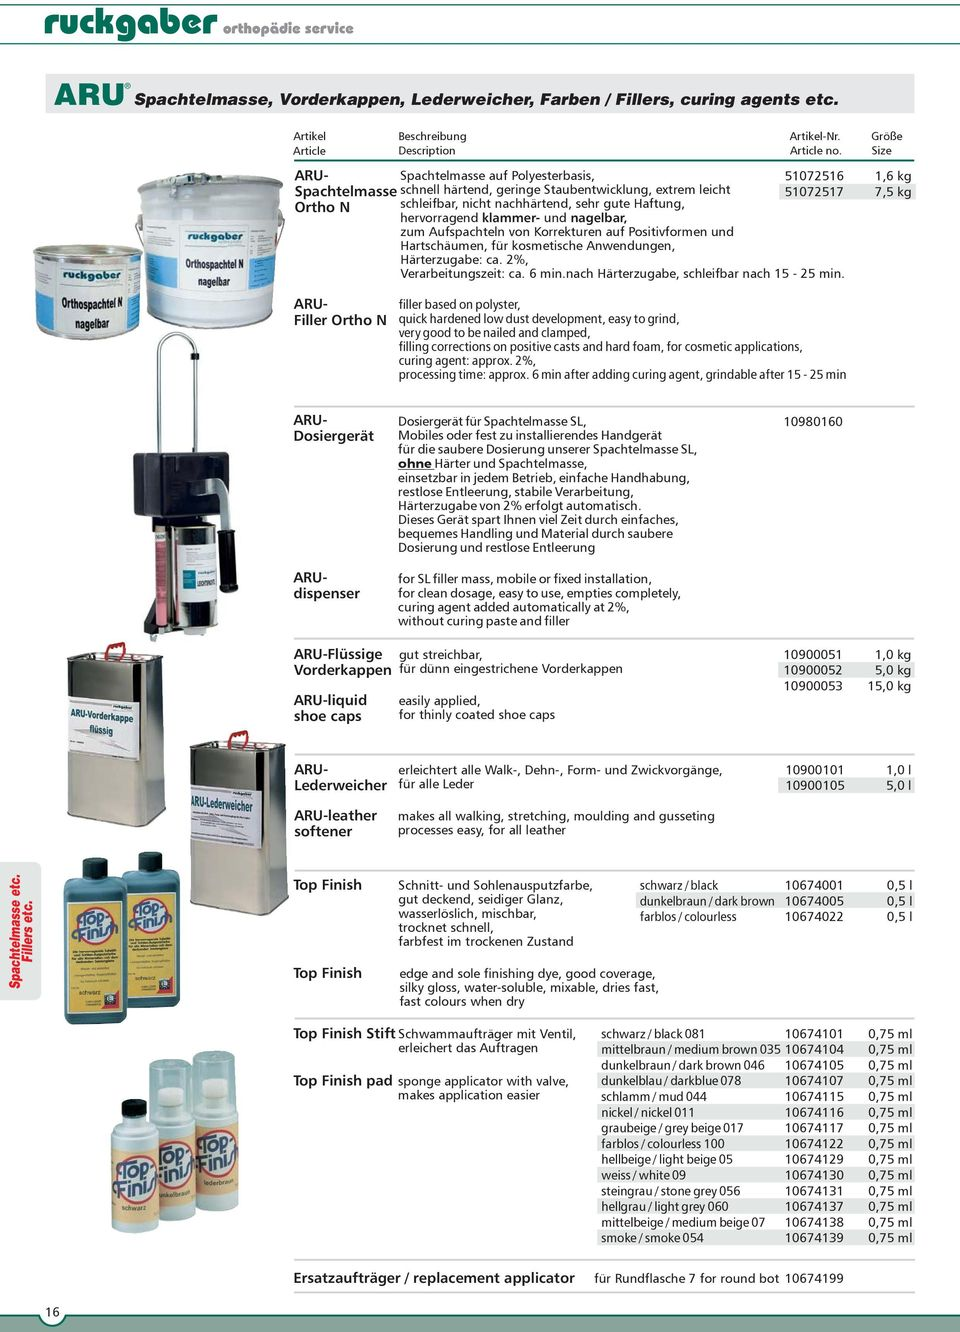 ARU. Chemische Produkte Chemical Products - PDF